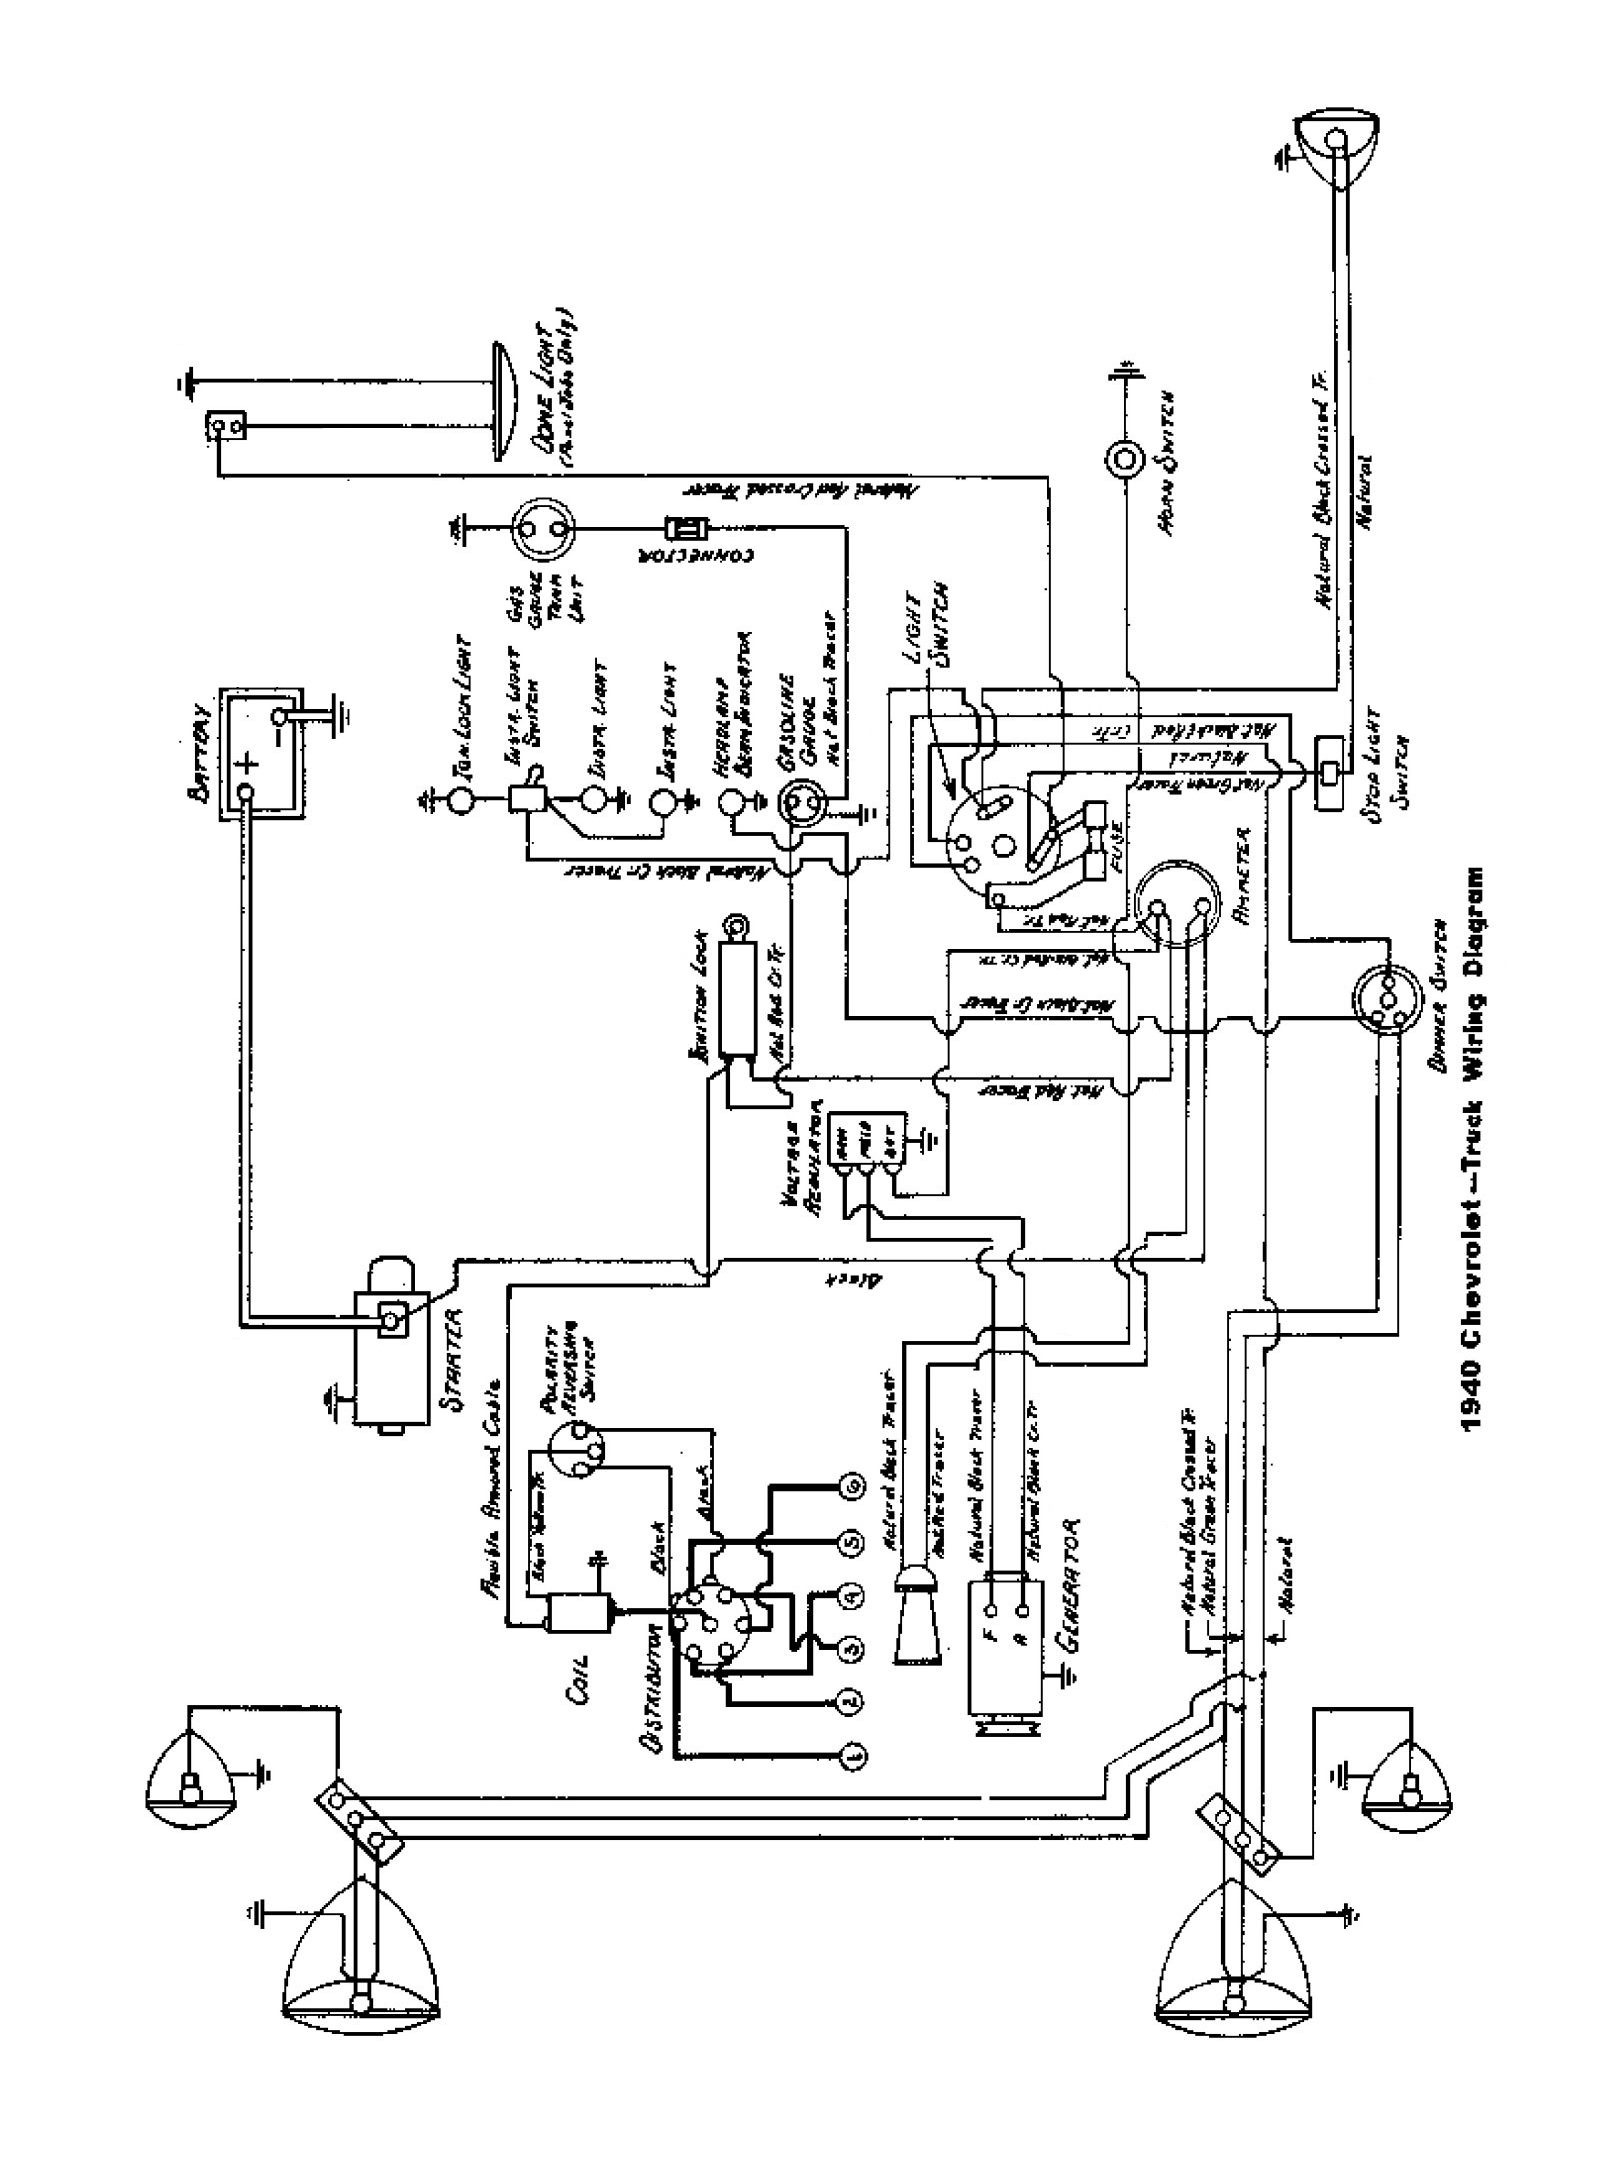 wiring diagram 1958 buick schematics and wiring diagrams 1964 buick riviera wiring diagram likewise 1965 diagrams alternator and generator diagram is scanned from a 1958